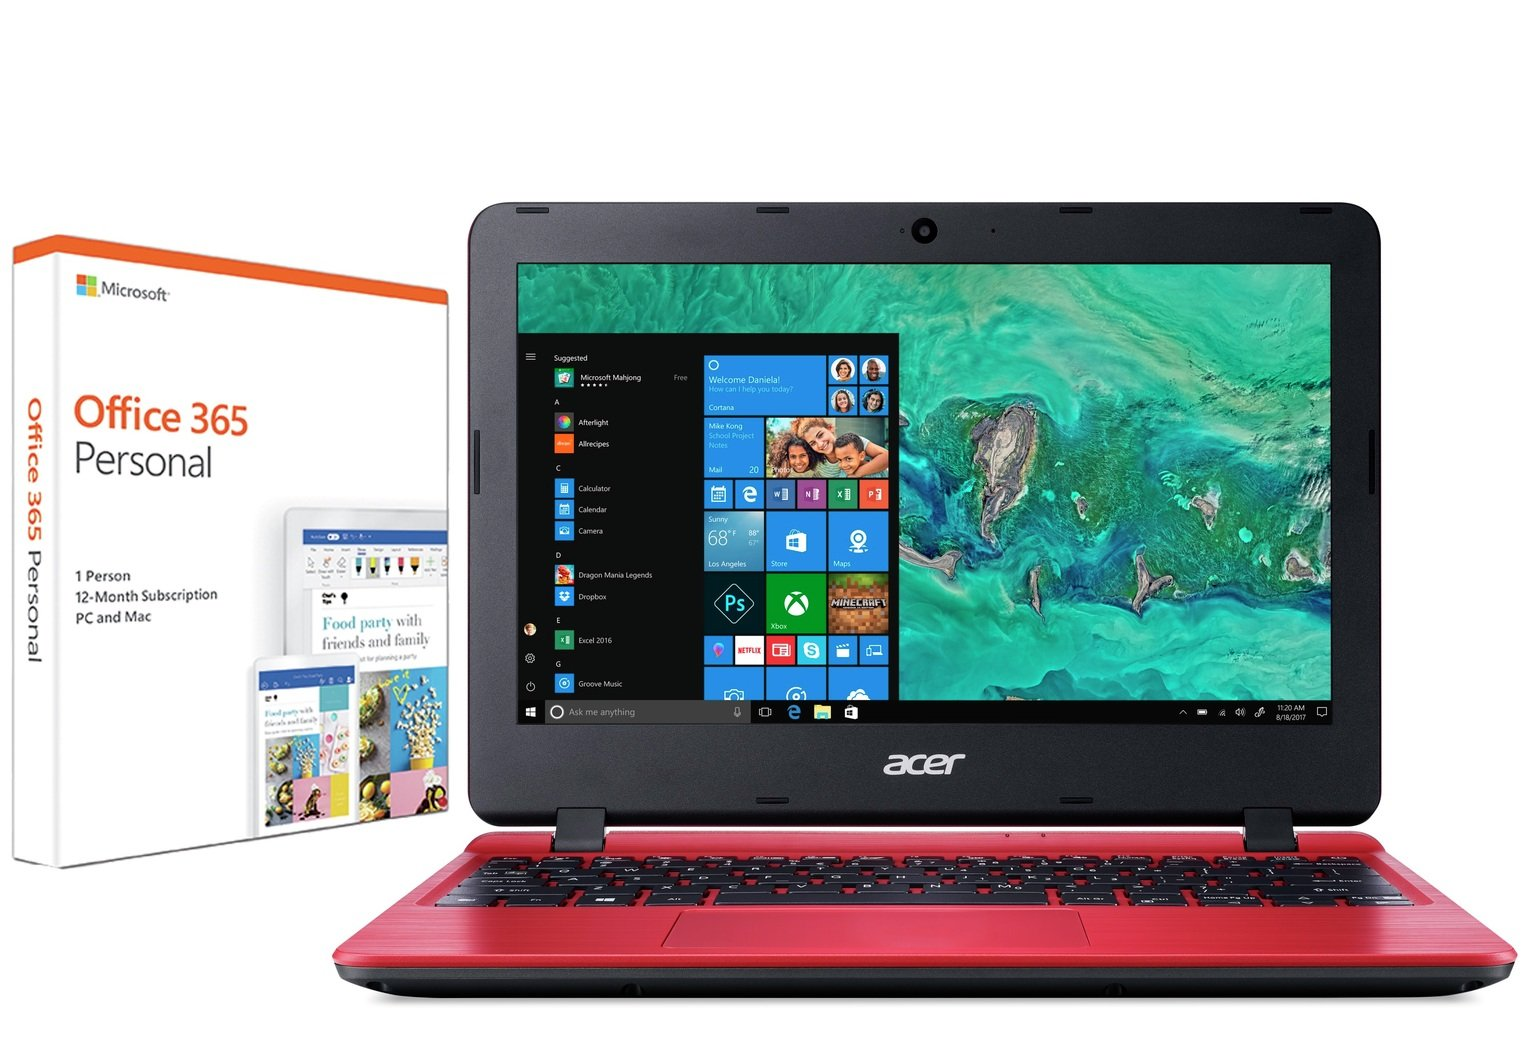 Acer Aspire 1 11 Inch Celeron 2GB 32GB Laptop - Red